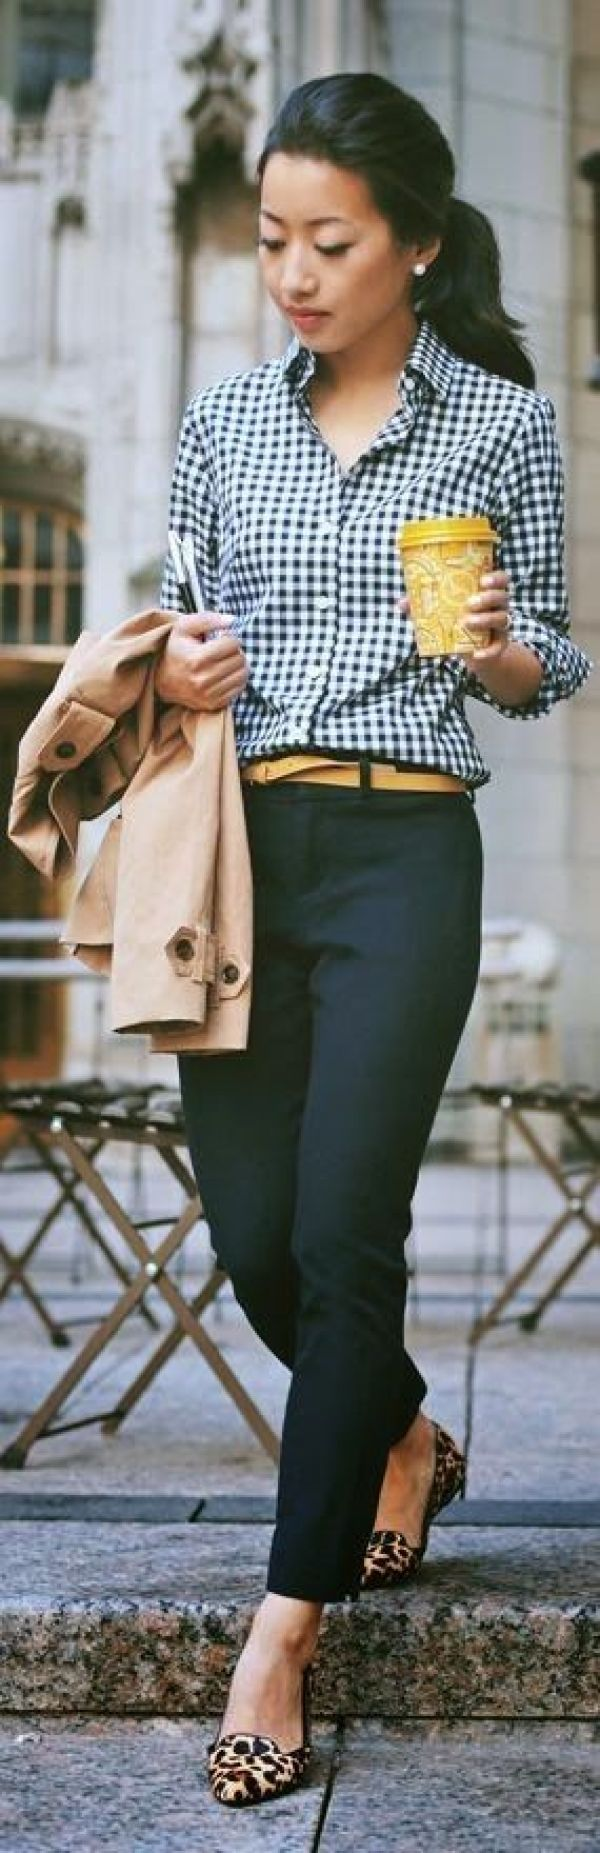 Casual Spring Fashion Inspiration 1 | http://www.roseclearfield.com